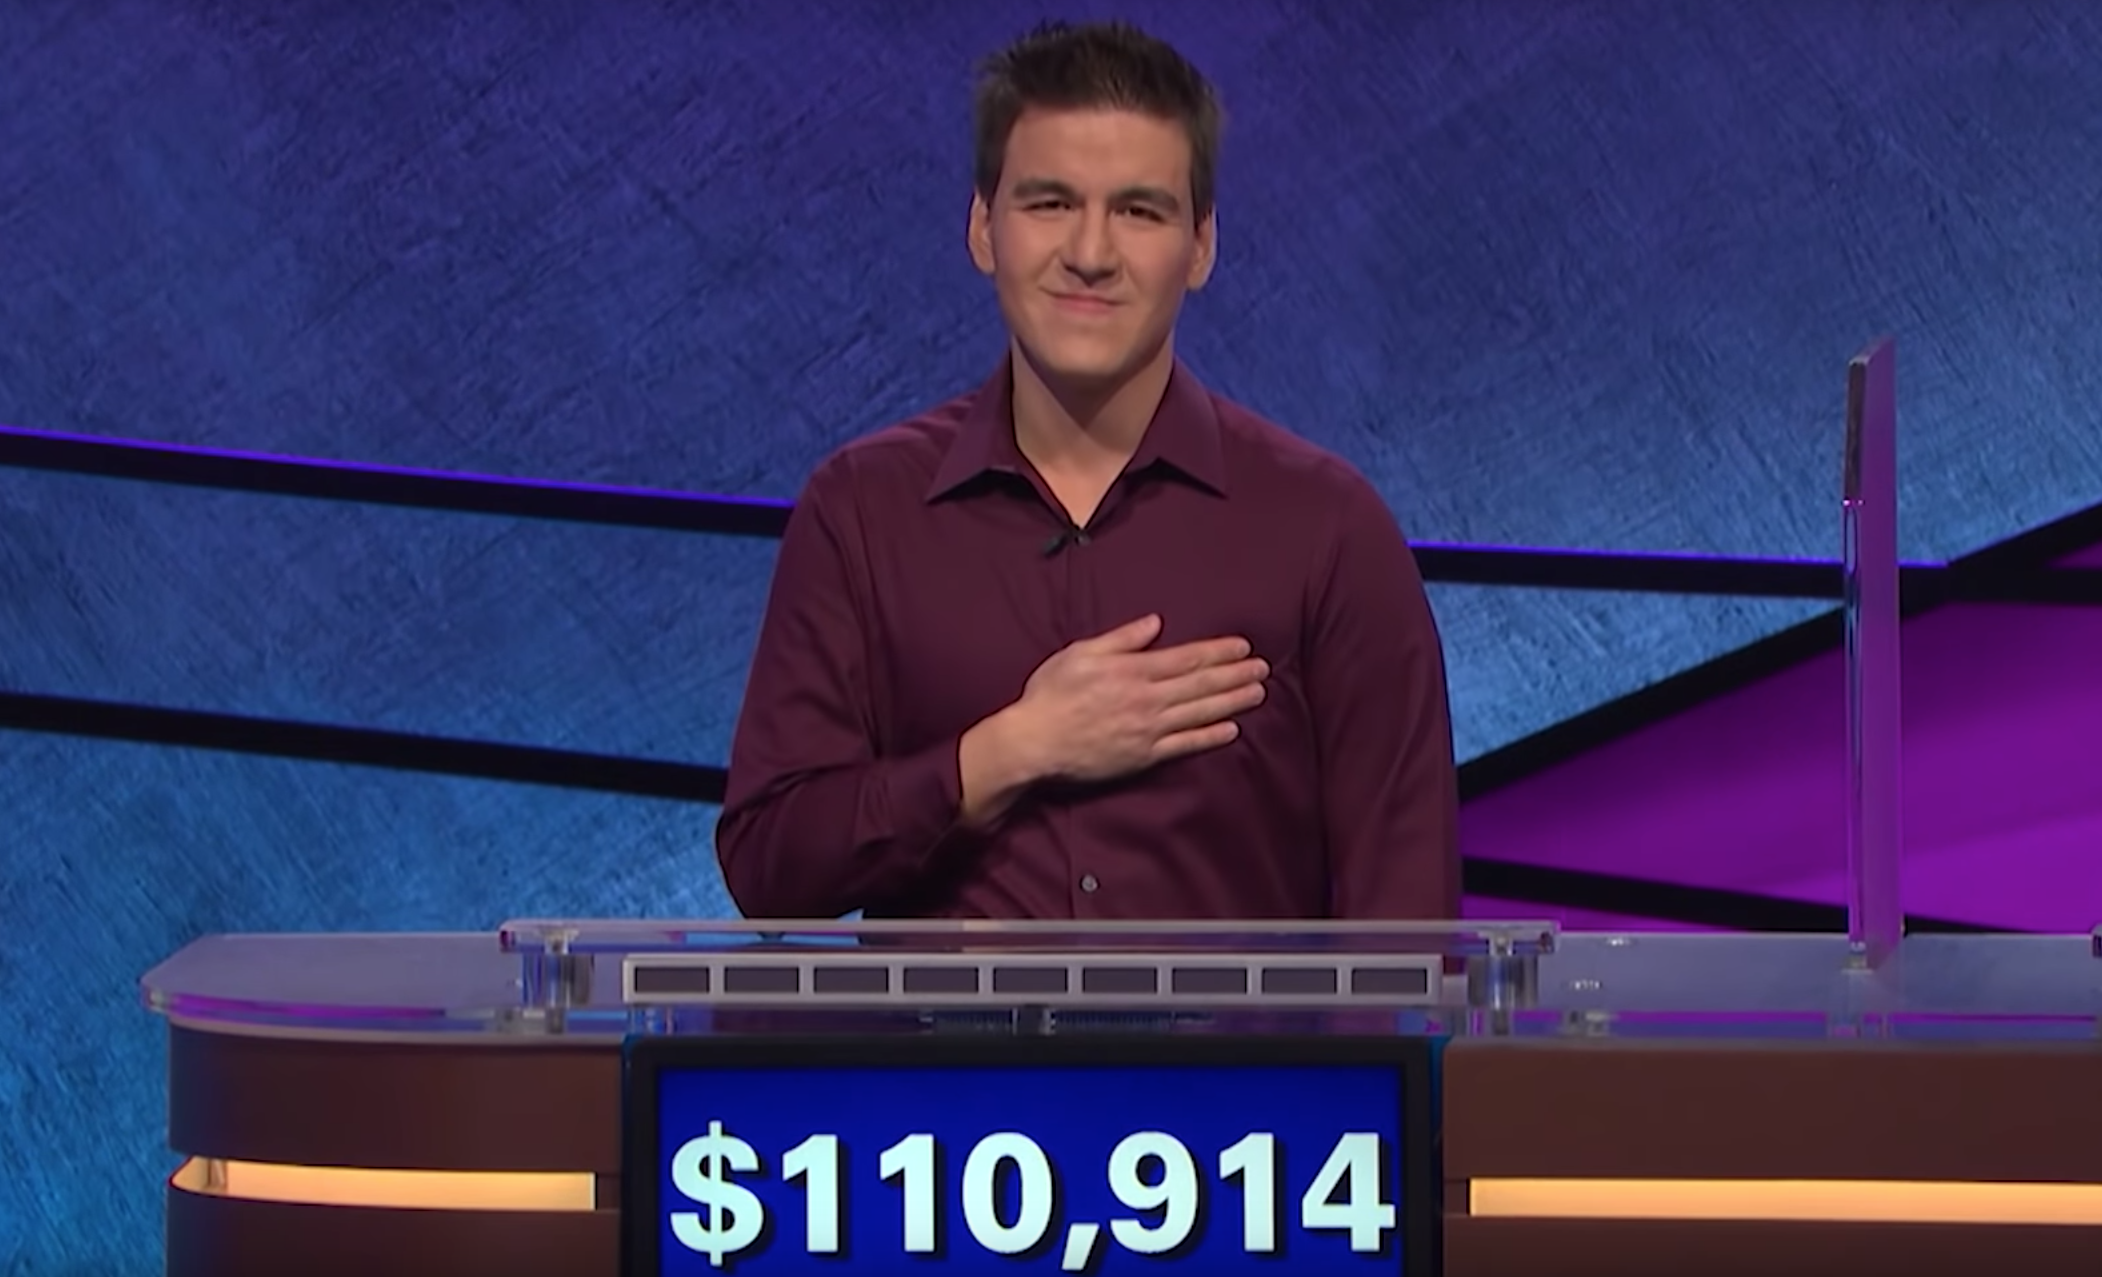 """Jeopardy!"" contestant crushes previous record for single day winnings"